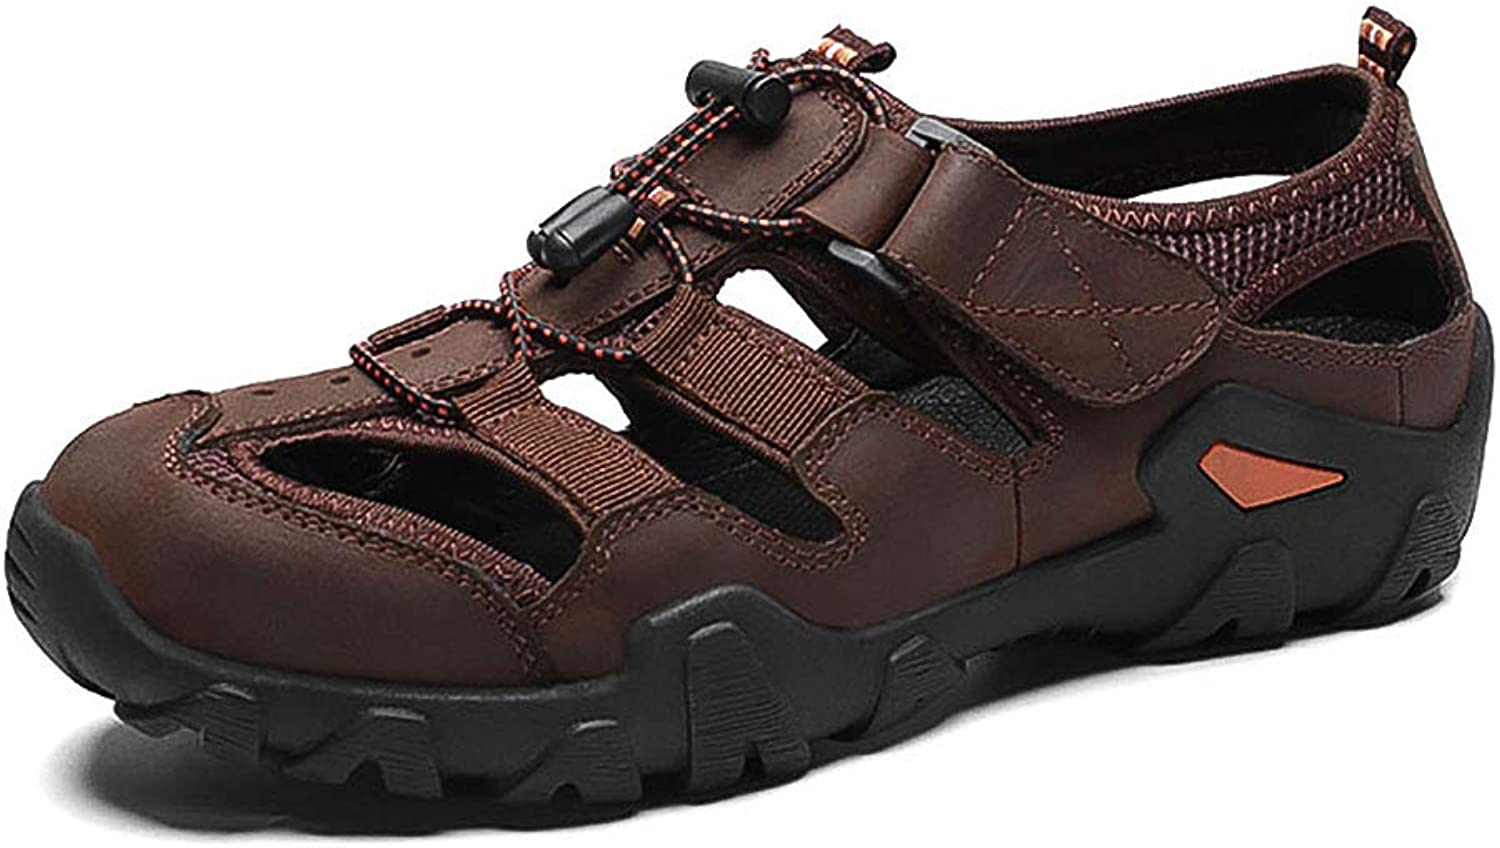 KTOL Casual Beach Men's Sandal, Summer Non-Slip Sport Sandals Arched Support PU Leather Hollow